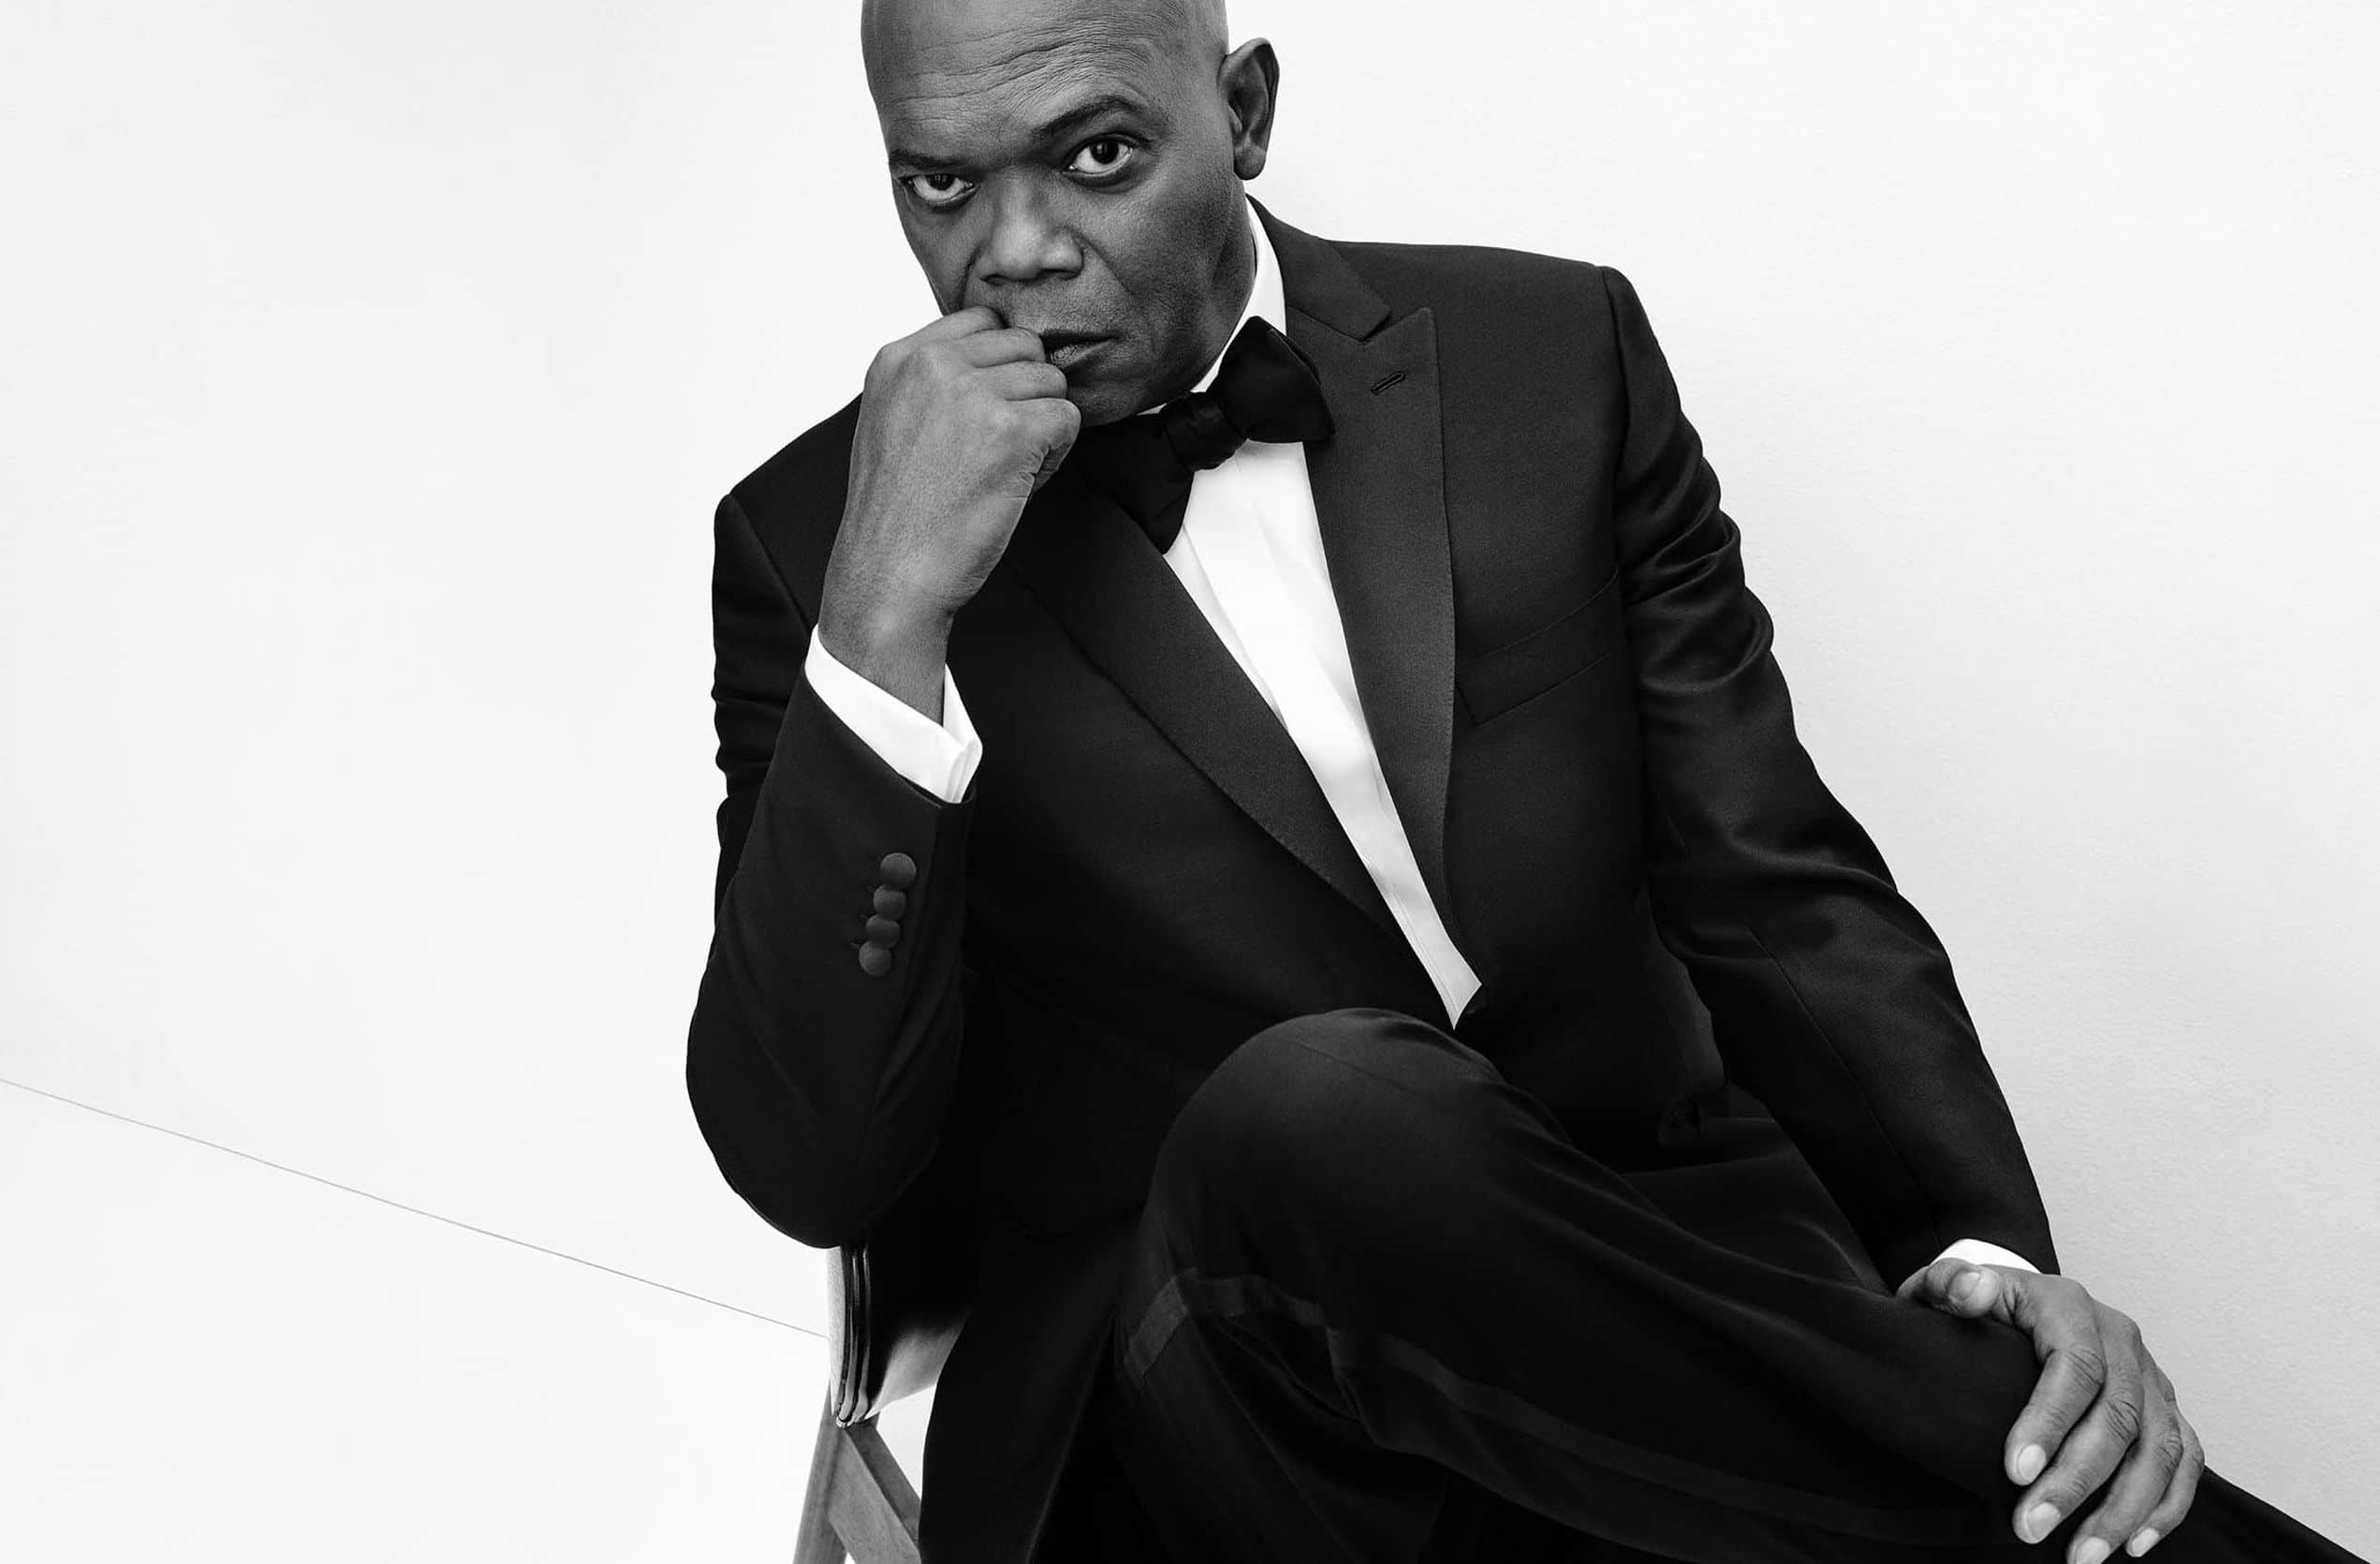 Brioni-advertising-Samuel-L-Jackson-tuxedo2